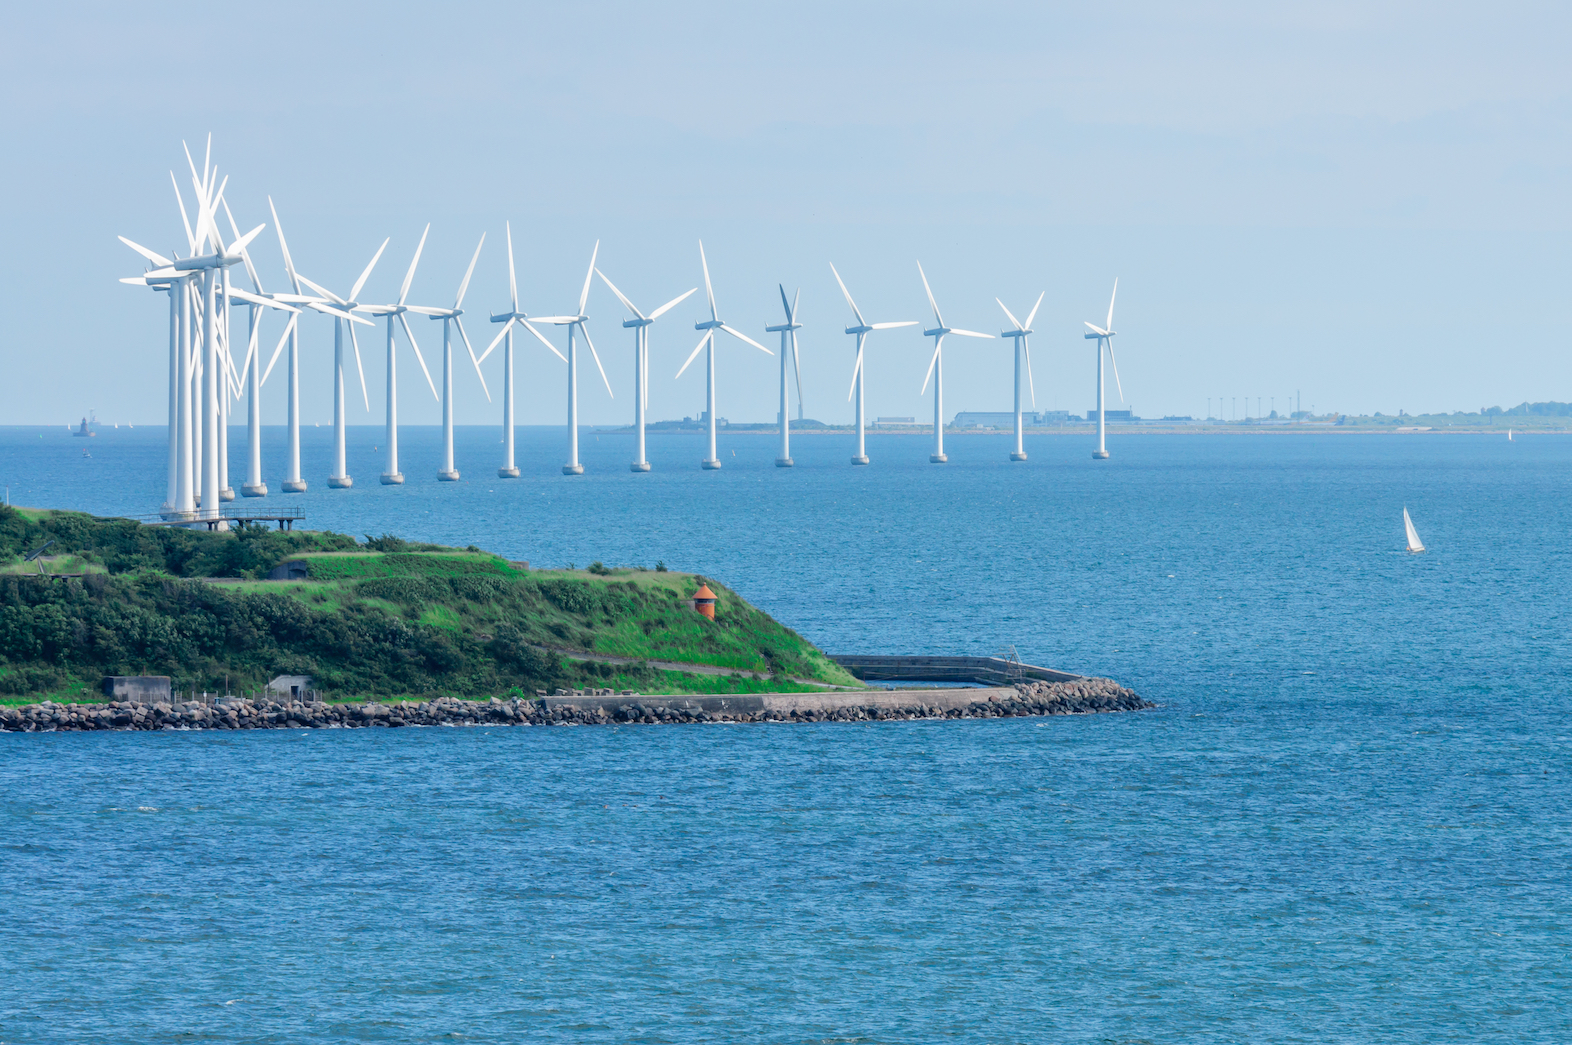 The findings of a new study could help reduce the environmental impact of offshore wind farm construction and conserve and manage marine ecosystems.